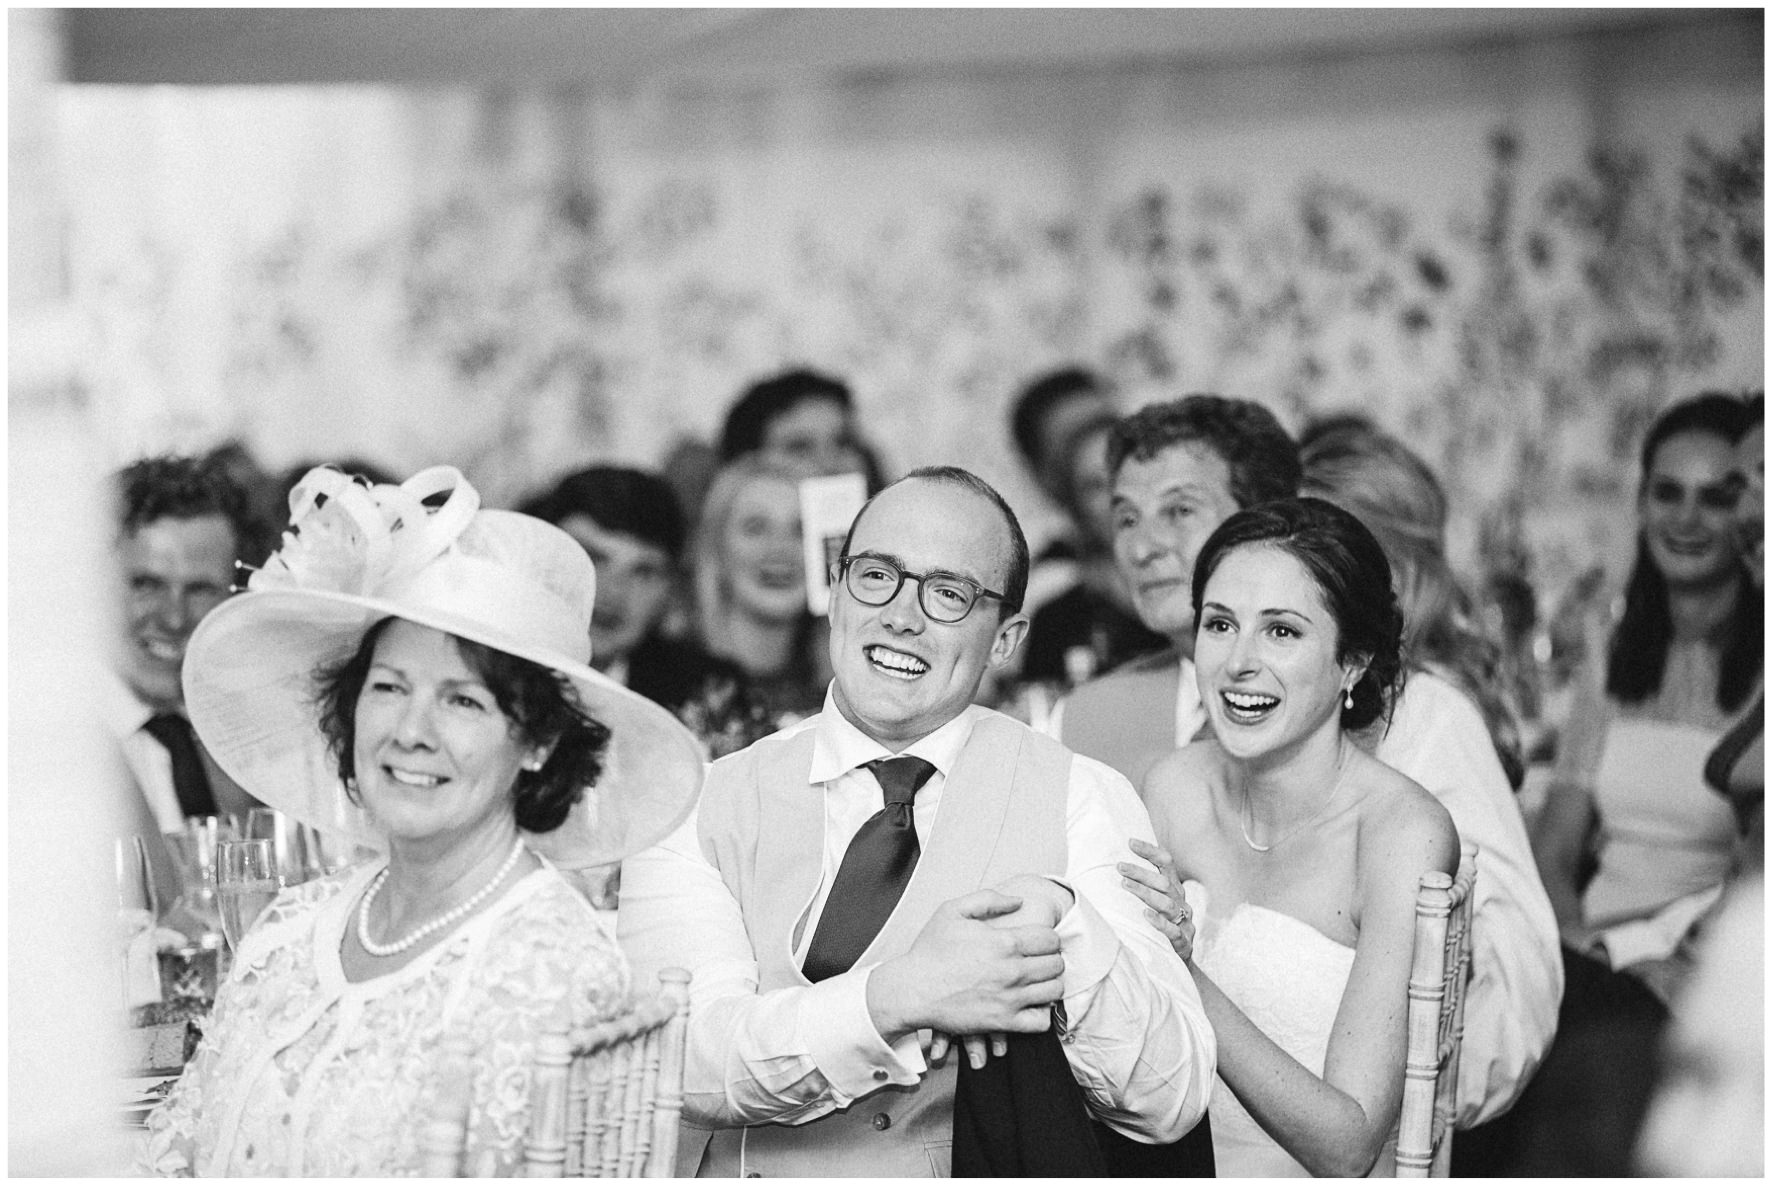 Lucy Davenport Photography, Cornwell Manor, wedding venue, Oxfordshire, Cotswold wedding, marquee wedding, marquee, wedding breakfast, speeches, bride and groom